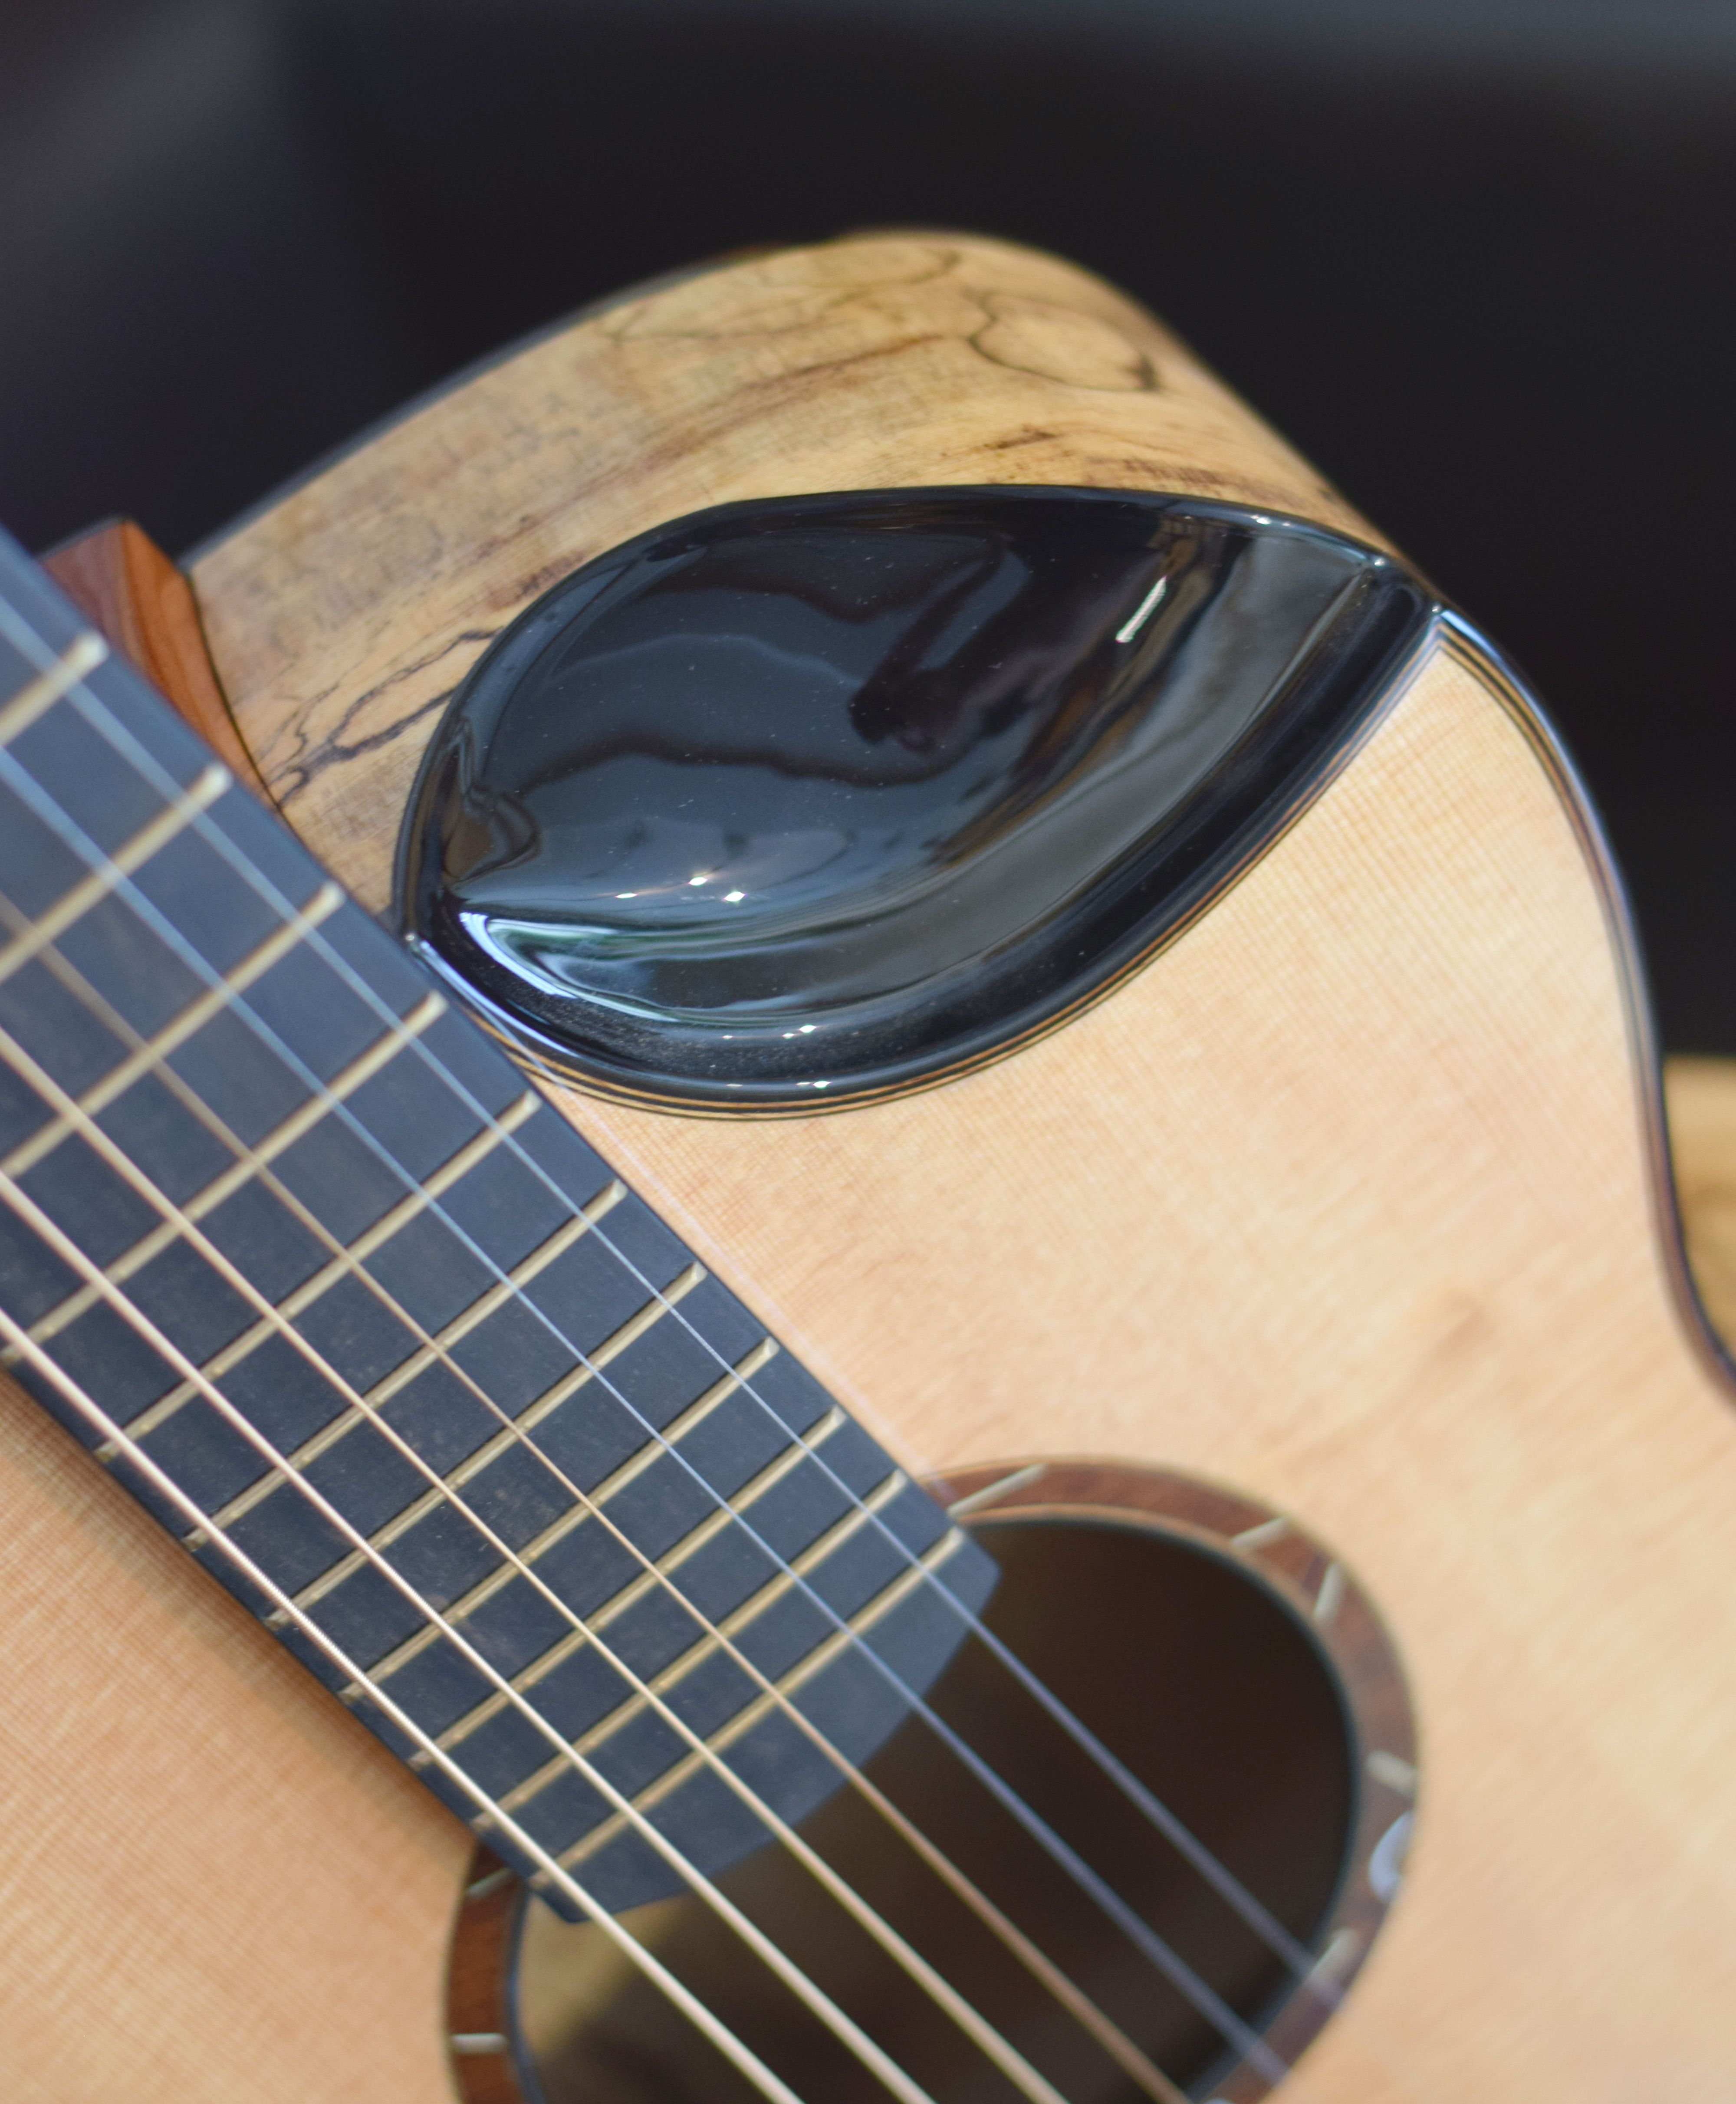 Mike Baranik S Scalloped Cutaway Or What I Like To Call The Scoop This Is A Brilliant Example Of How Contemporary Luthiers Acoustic Guitar Luthiery Guitar